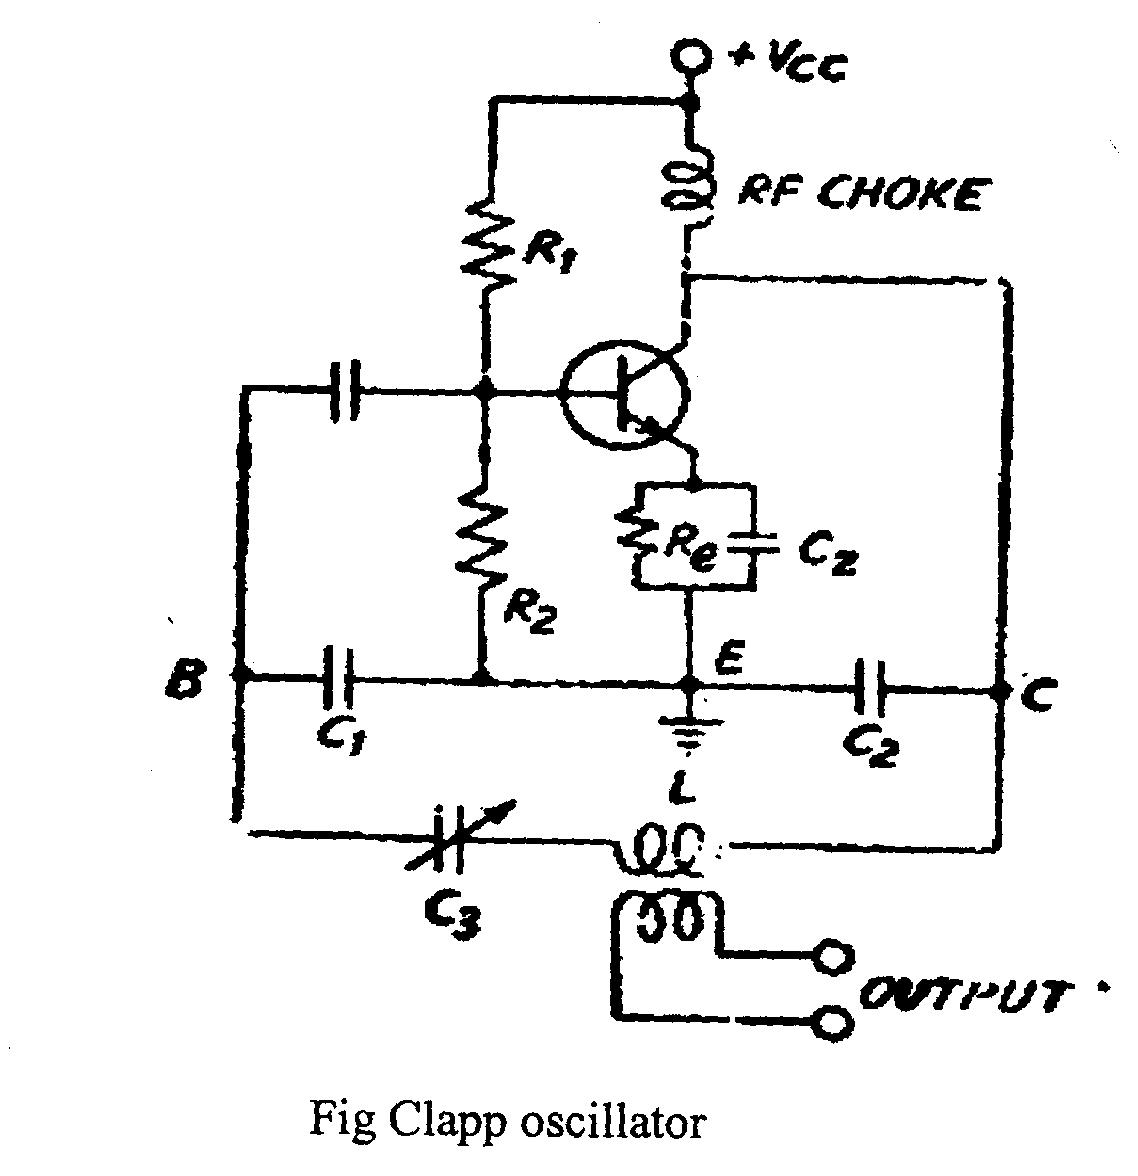 A Media To Get All Datas In Electrical Science September 2011 Input Signal Amplifier Circuit Amplifiercircuit The Capacitor C1 Is Made Large So As Reduce Effect Of Collector Capacitance Variations D2 Voltage Changes